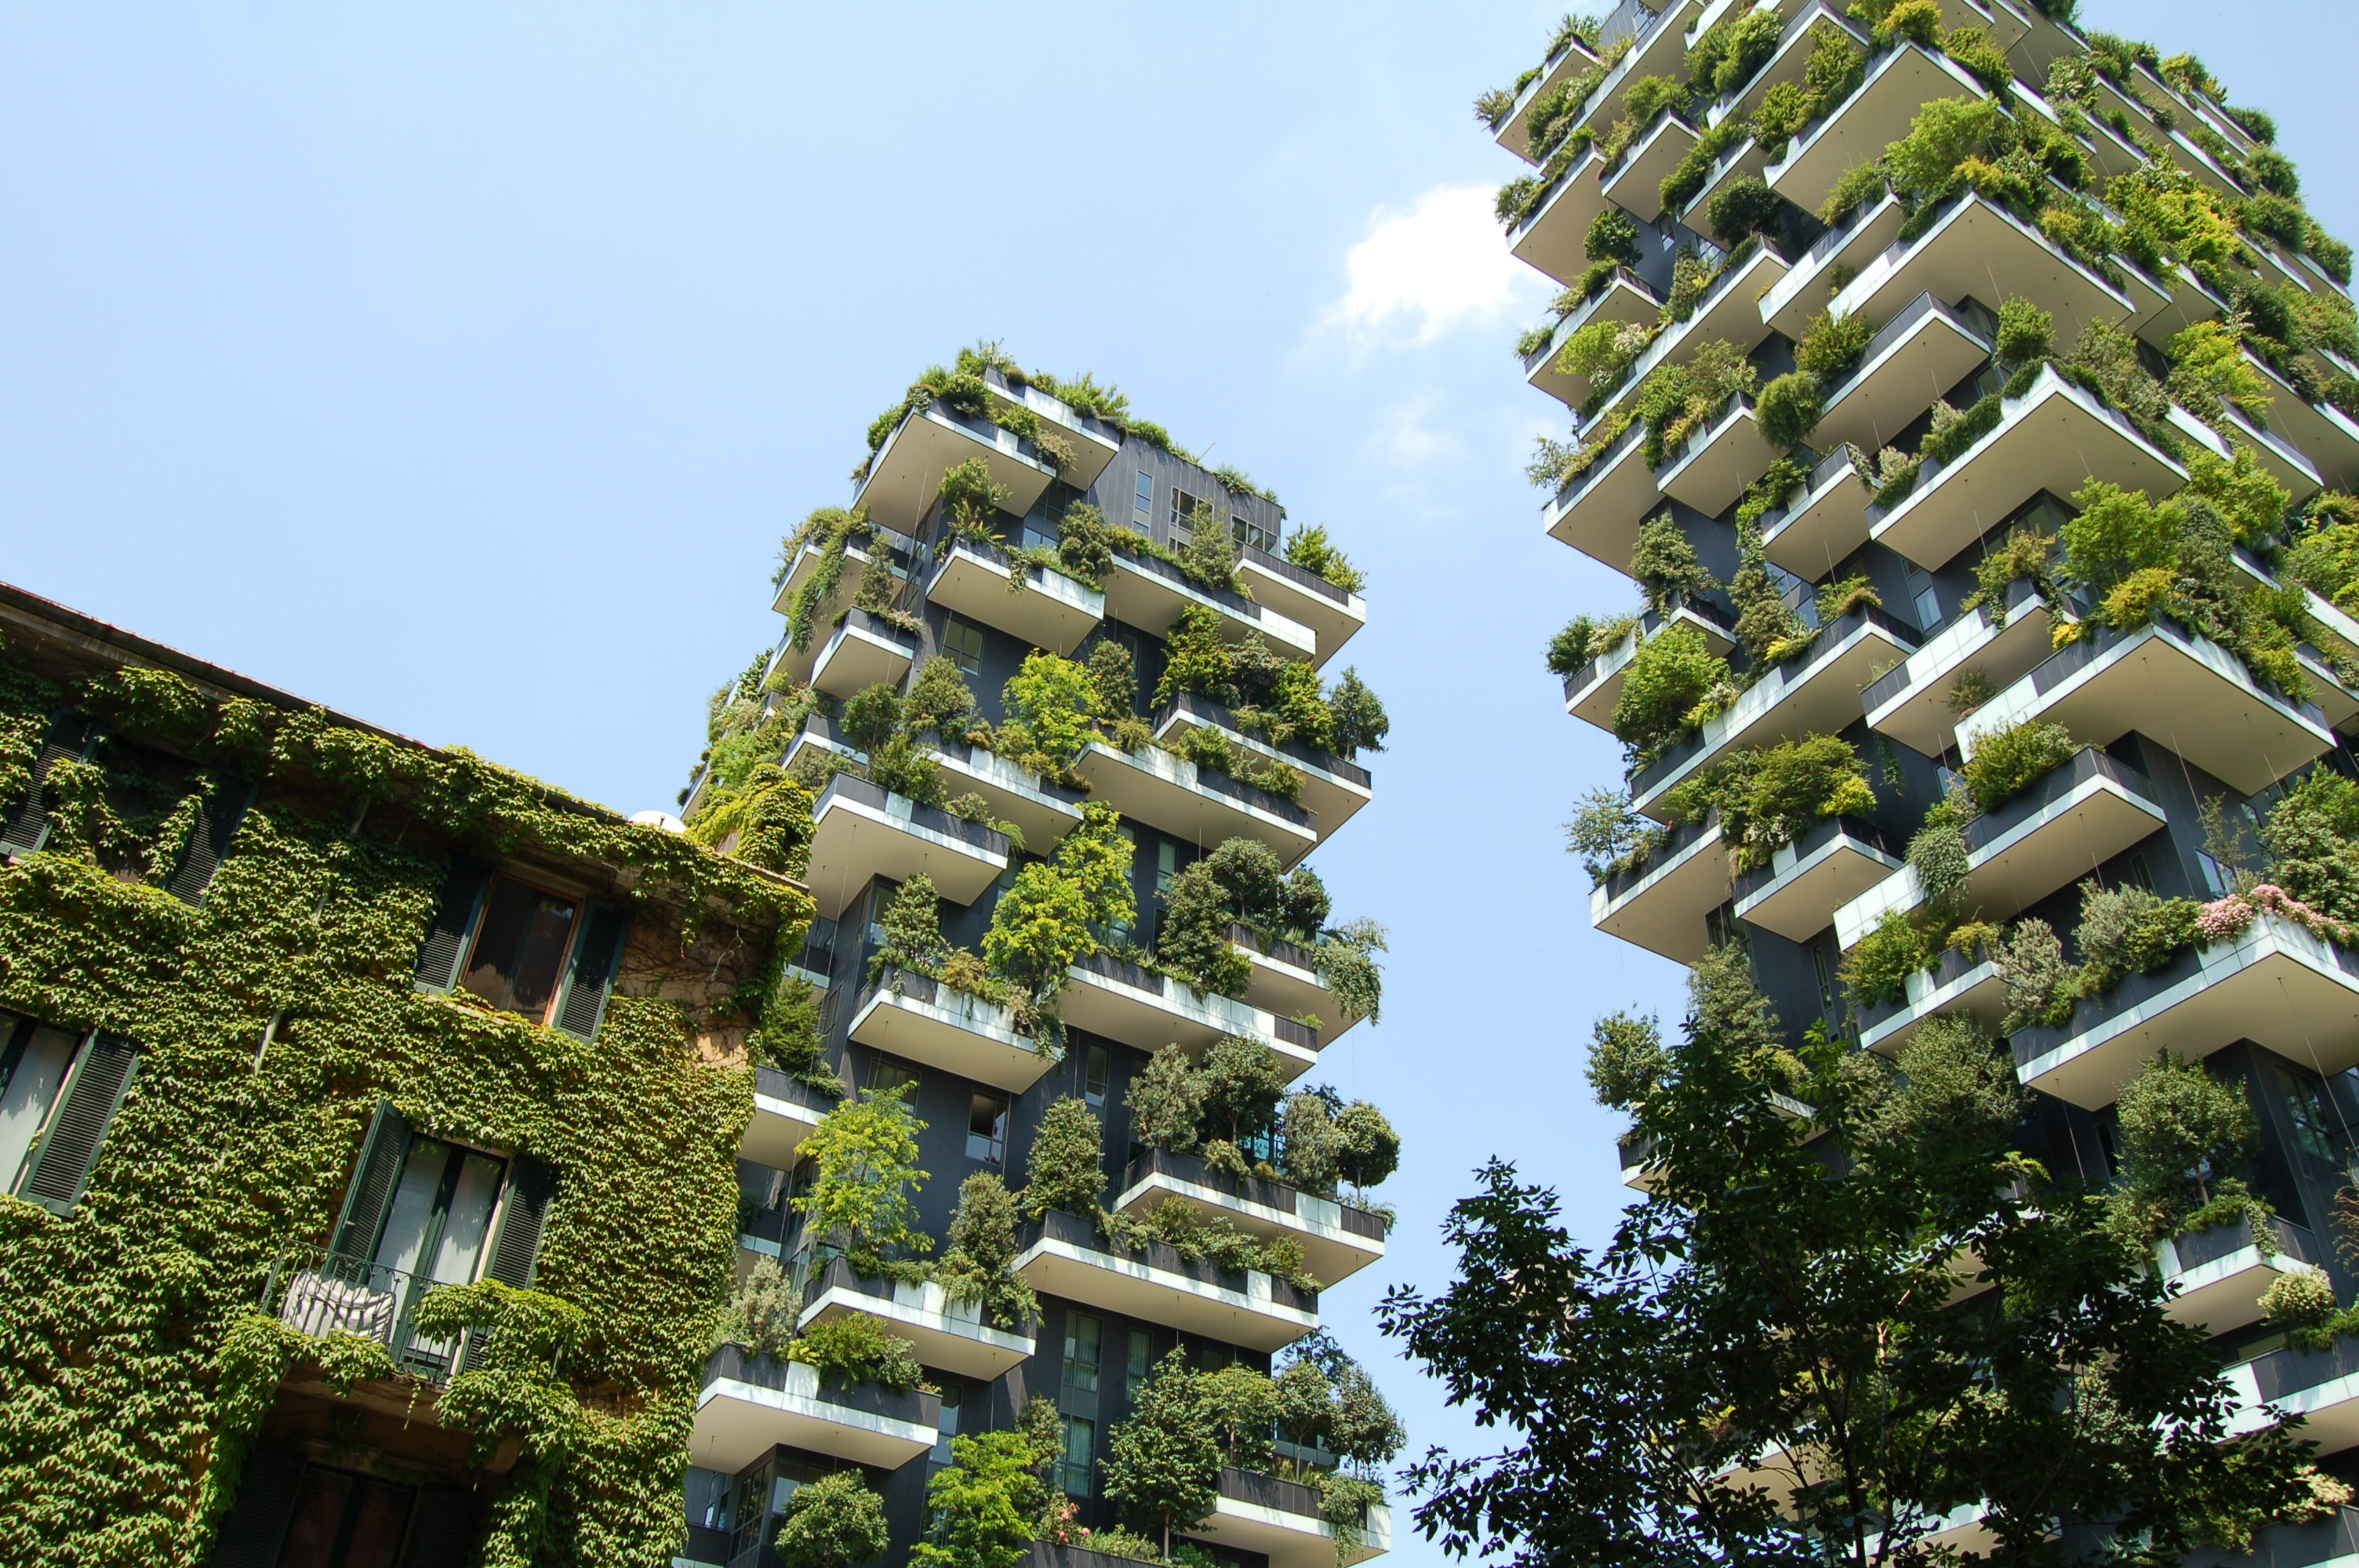 Two tall buildings with large green bushes and trees on their terraces